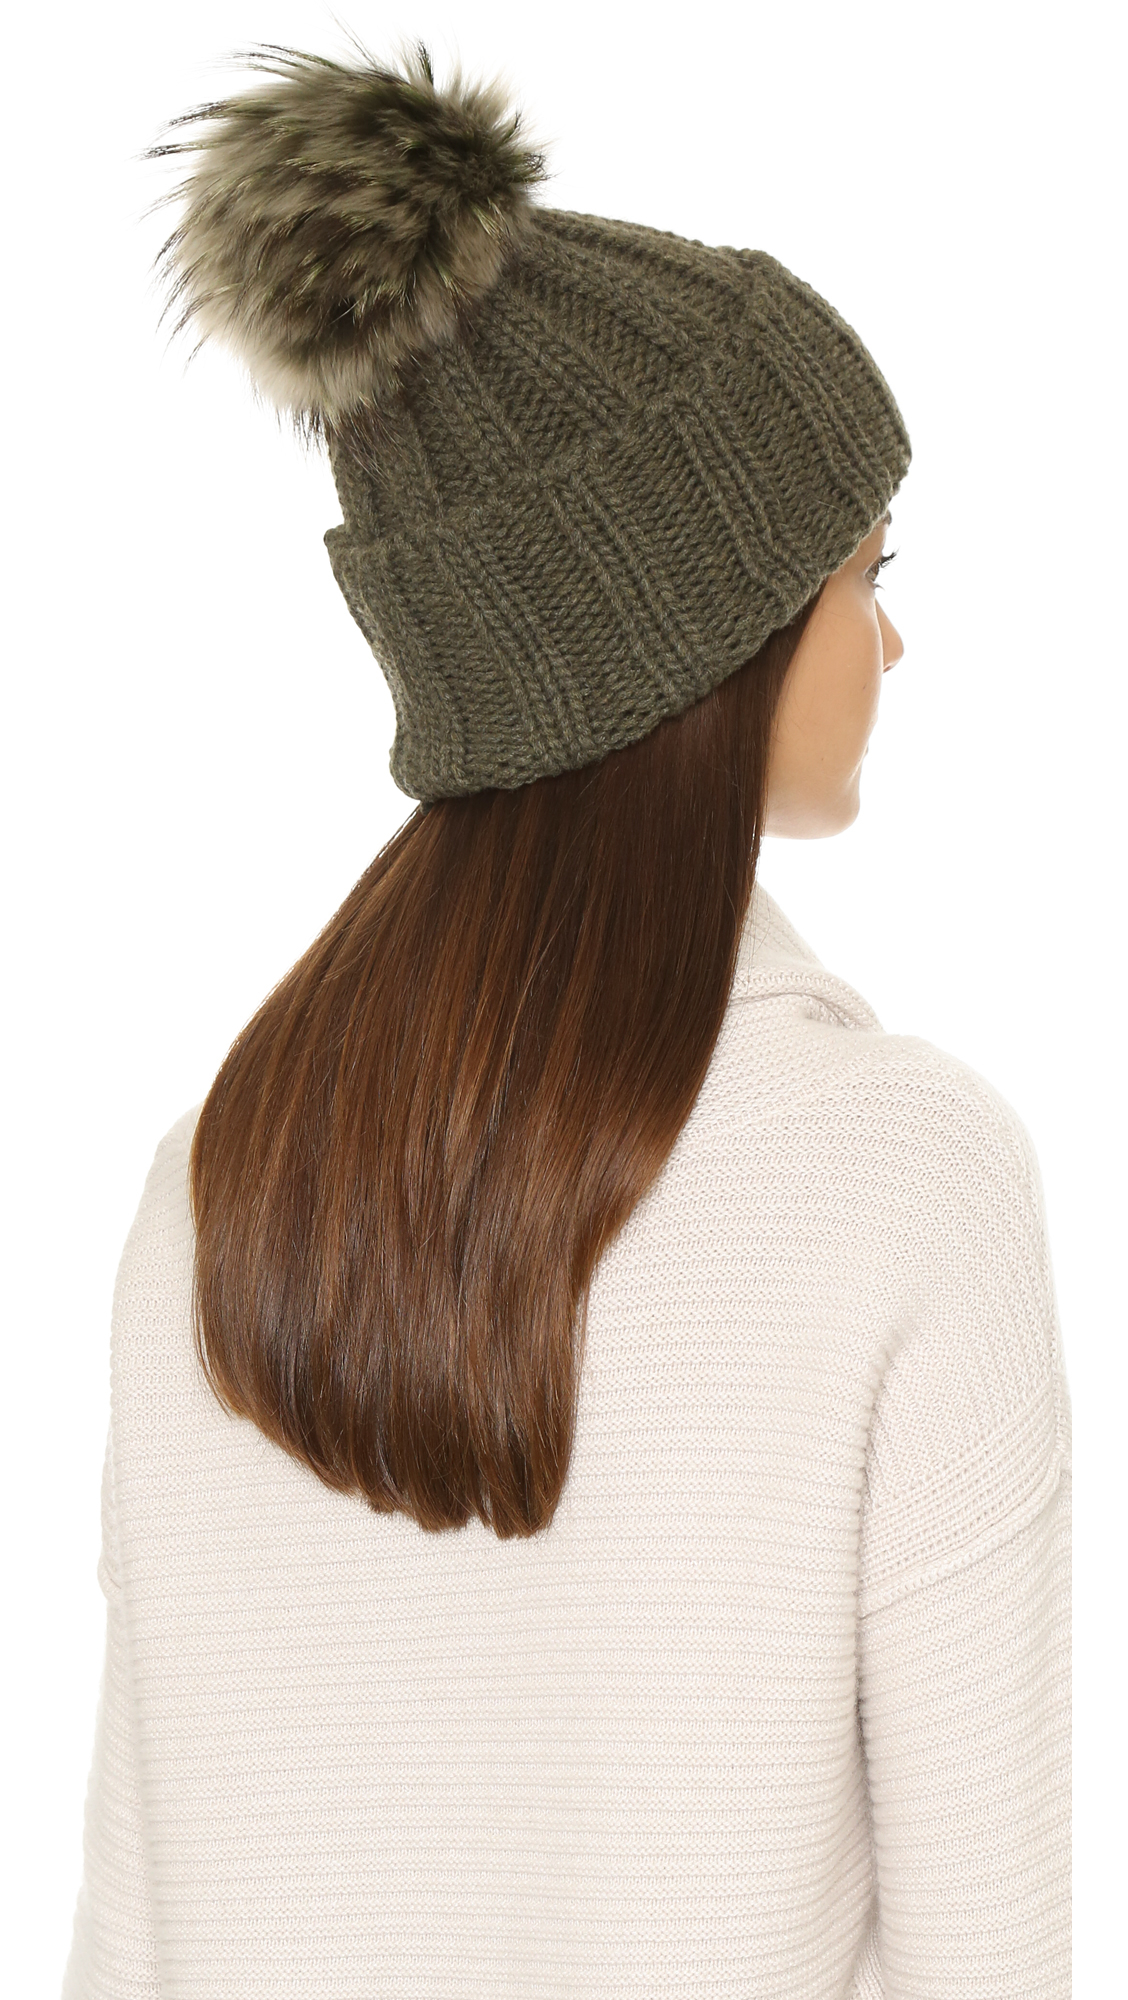 Lyst - Inverni Cashmere Ribbed Pom Beanie Hat - Olive in Green 01baac423f9